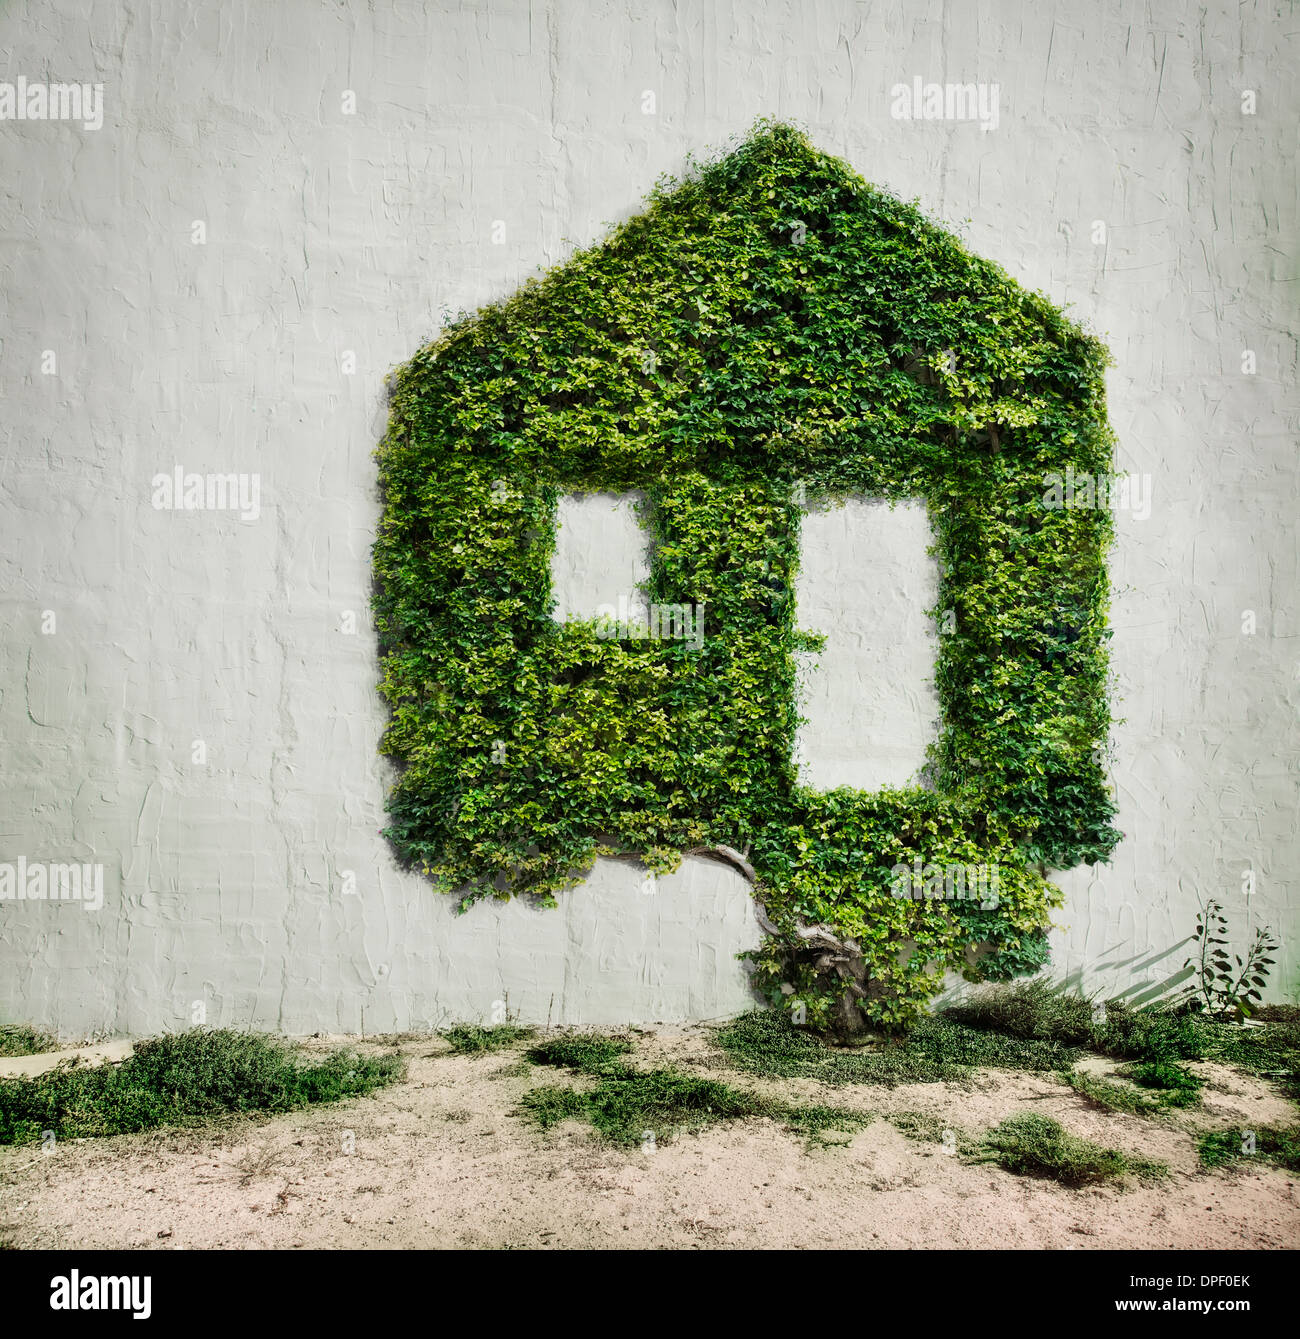 Ivy growing in shape of house - Stock Image